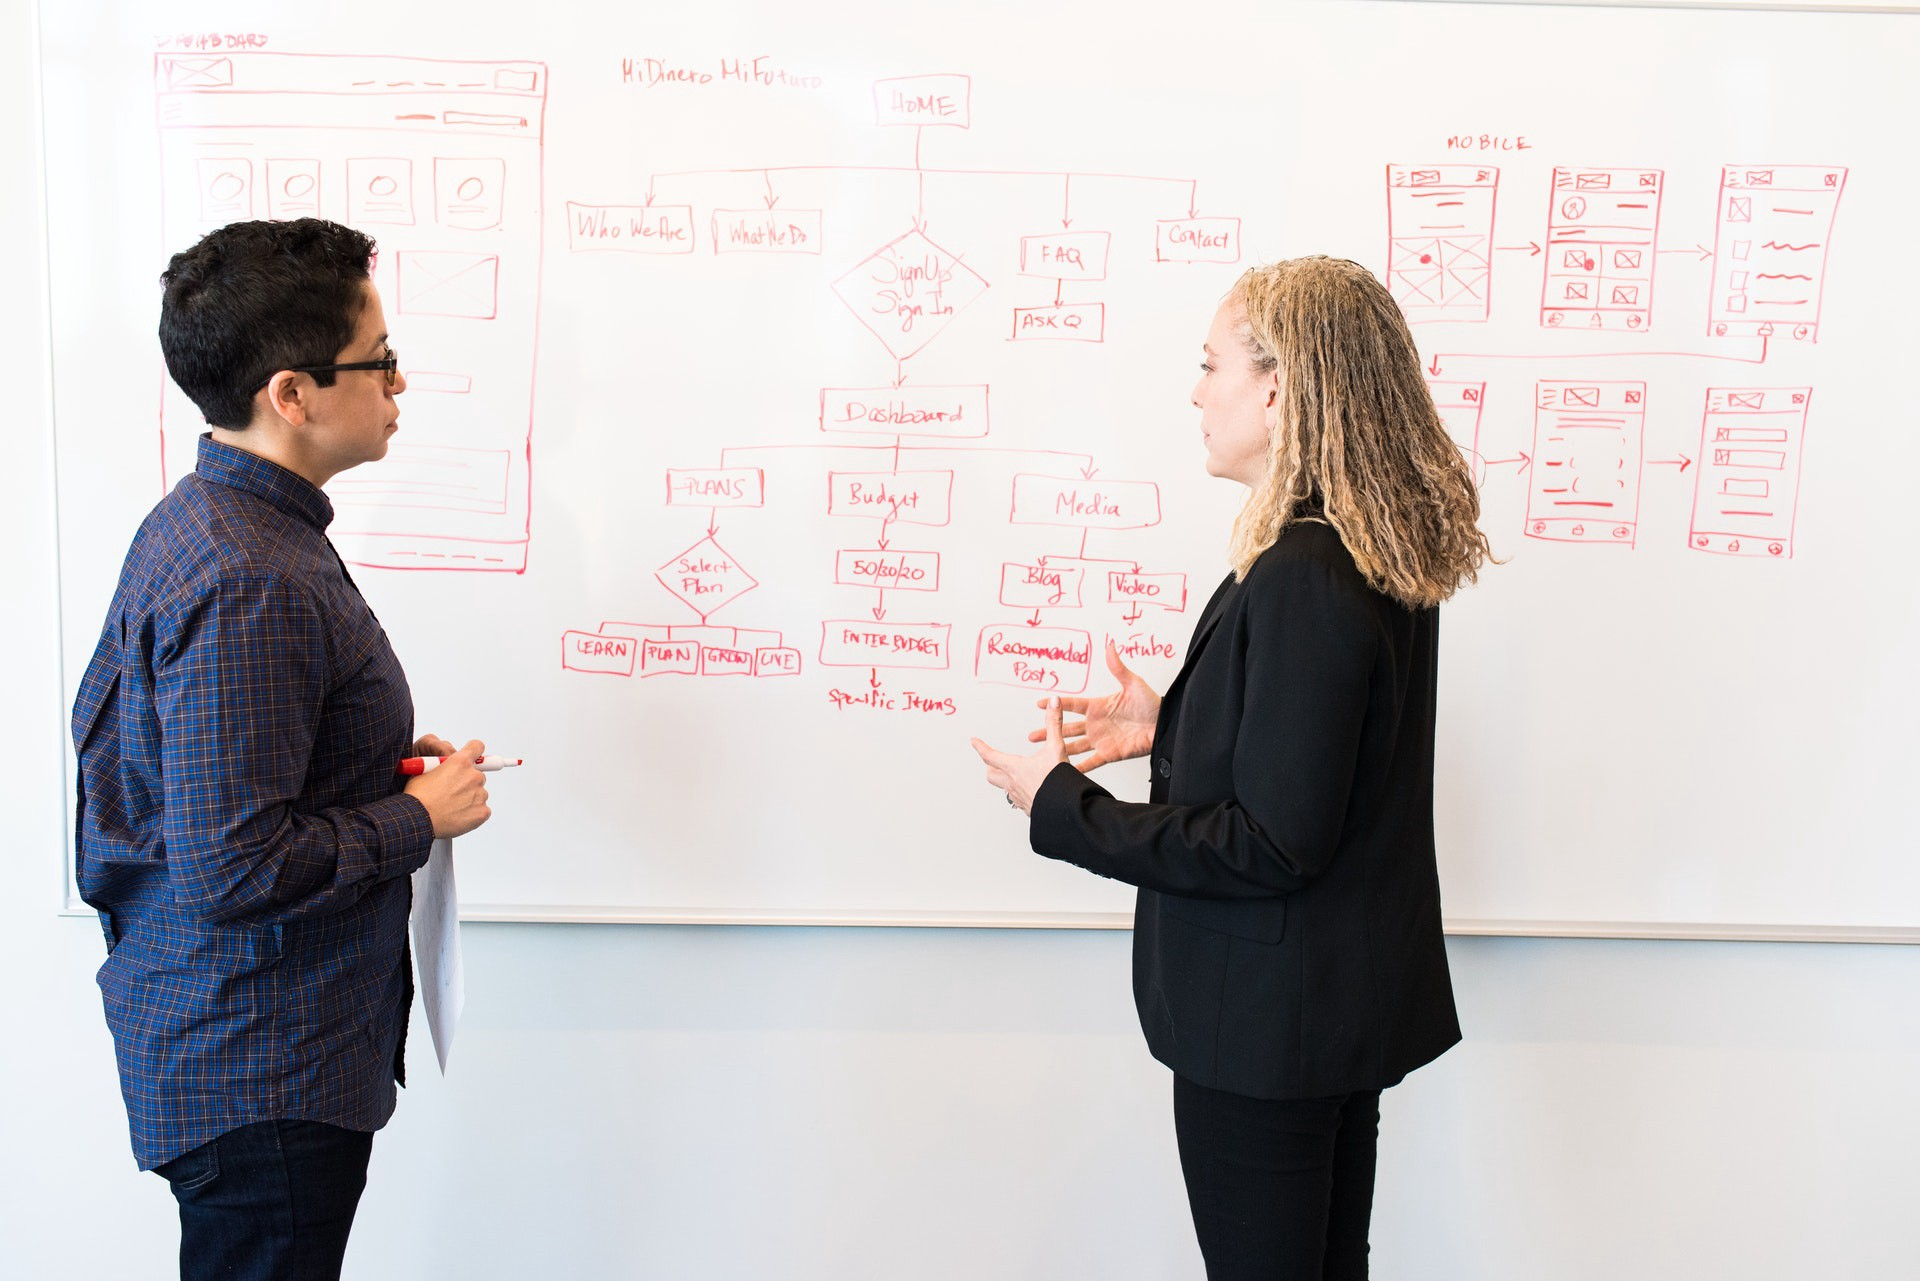 two people standing in front of a whiteboard and discussing wire frames and flow charts